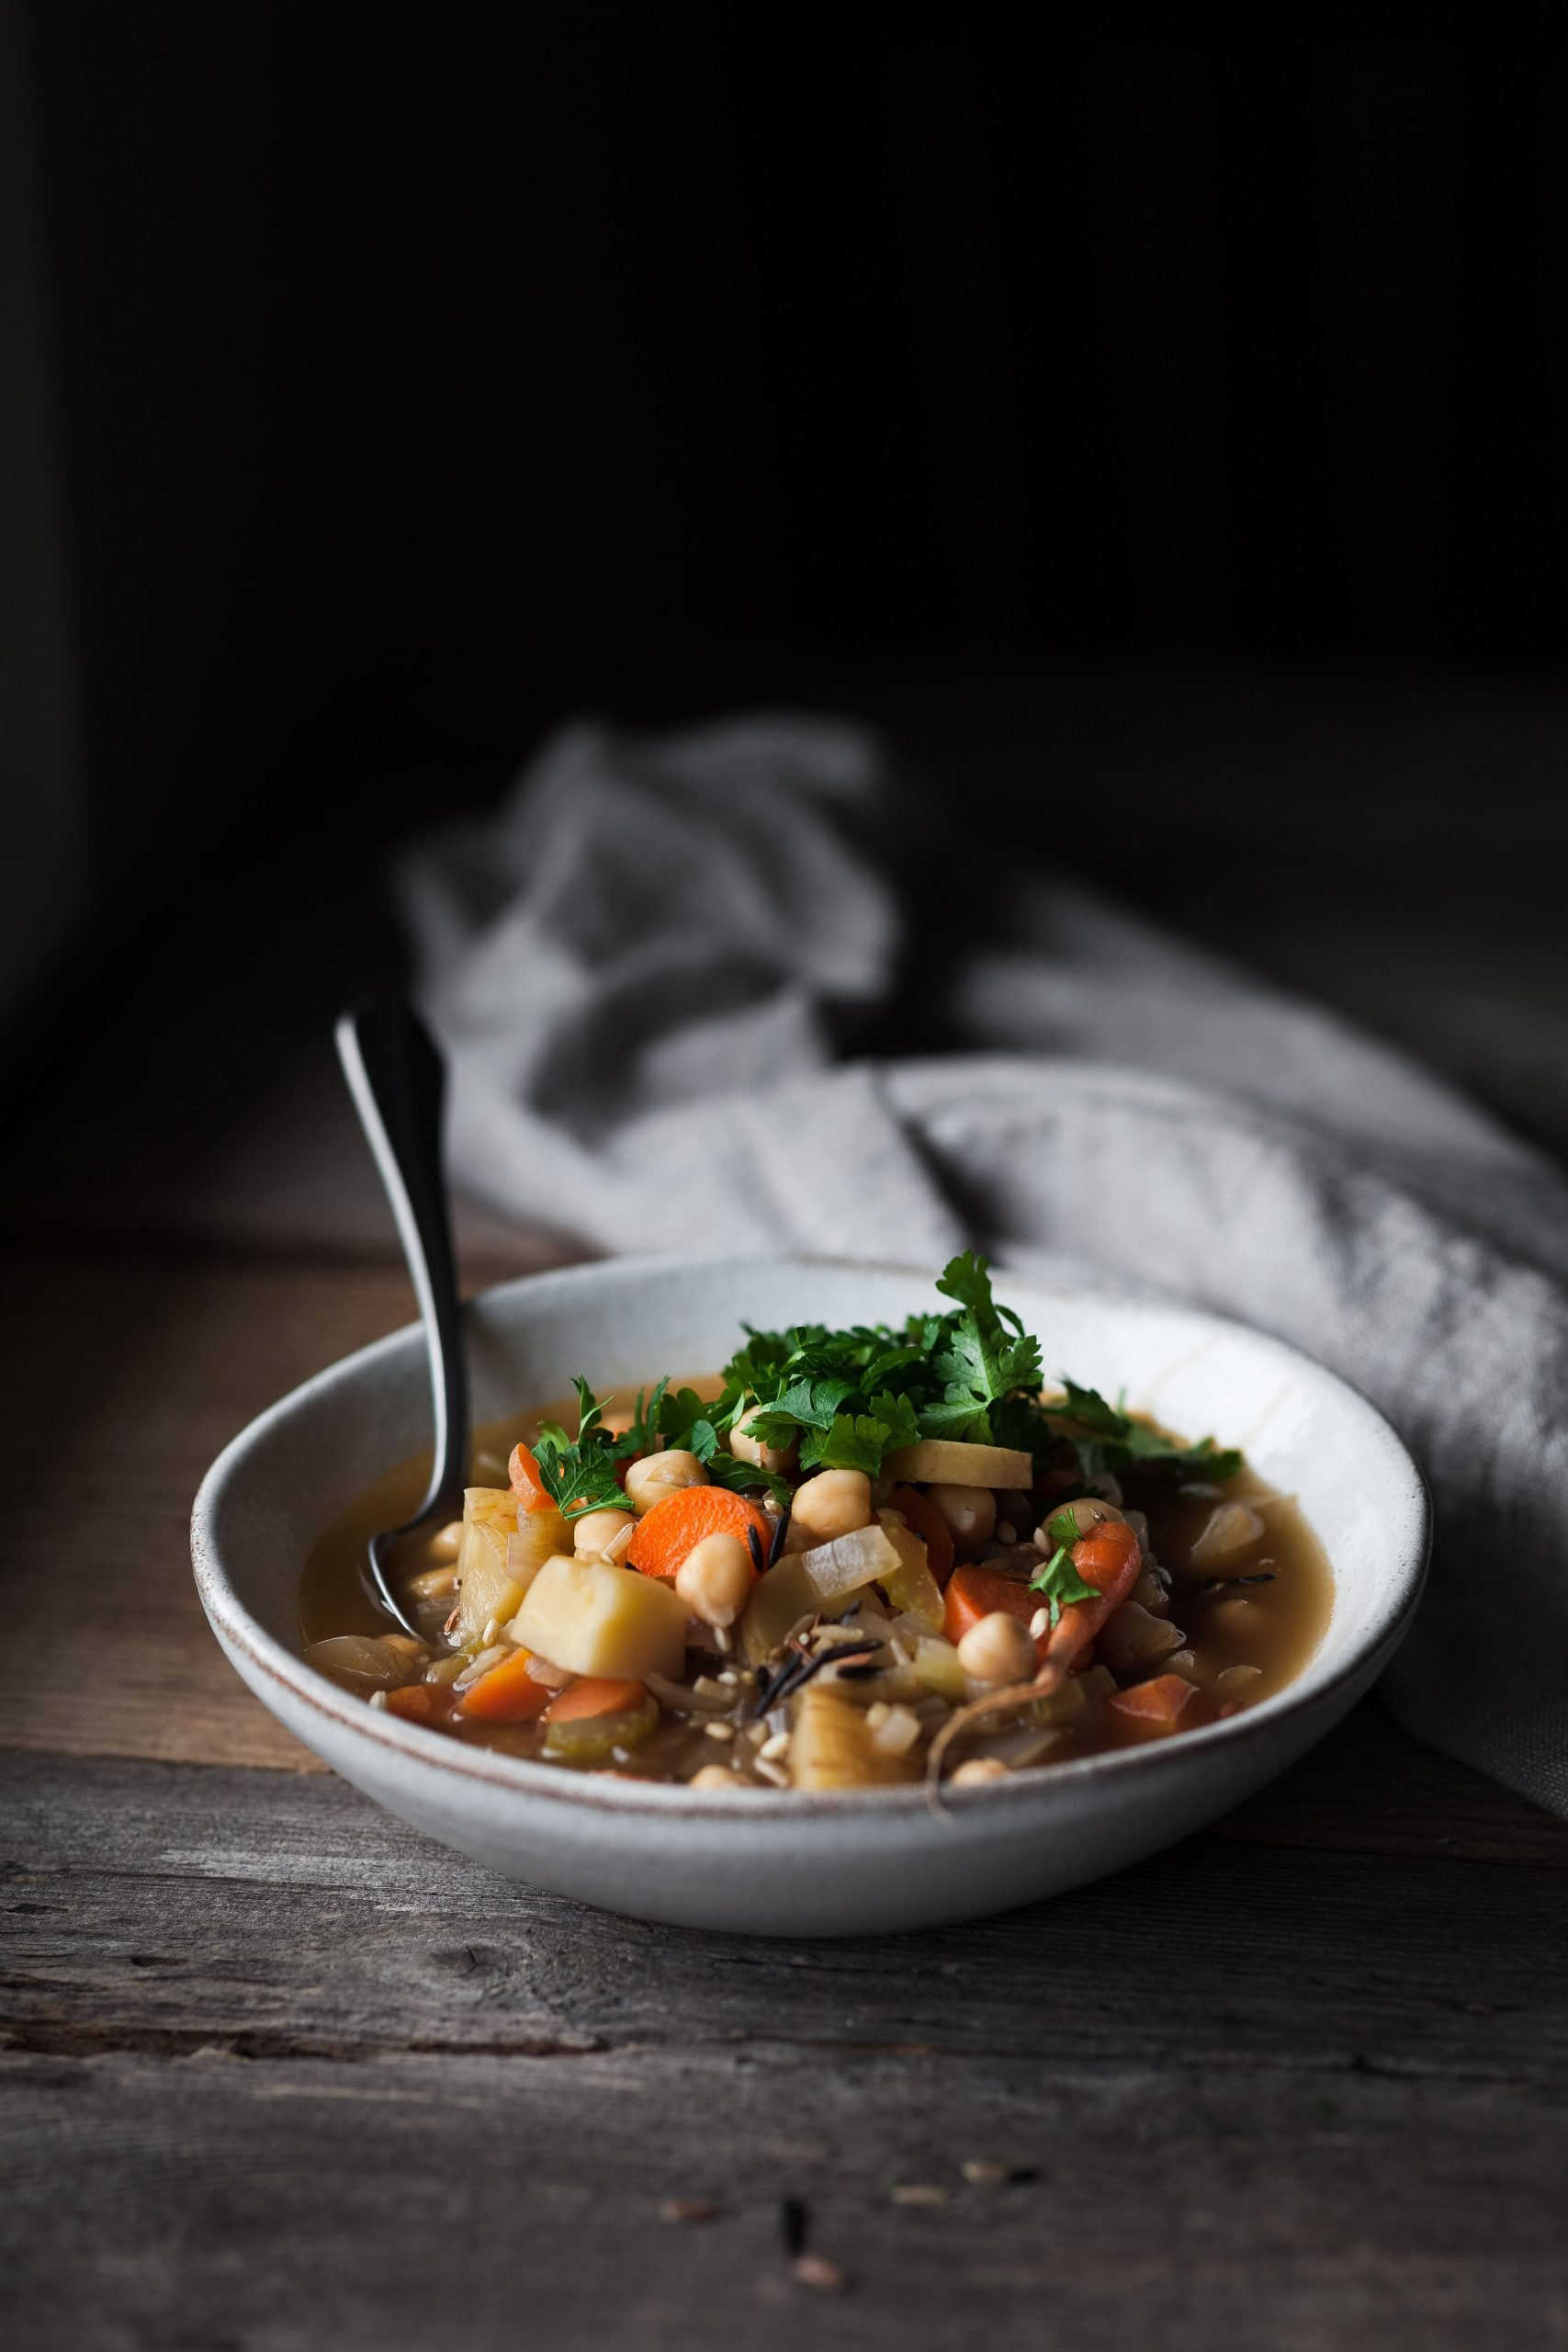 a head on image of a bowl of soup sitting on a wood table.